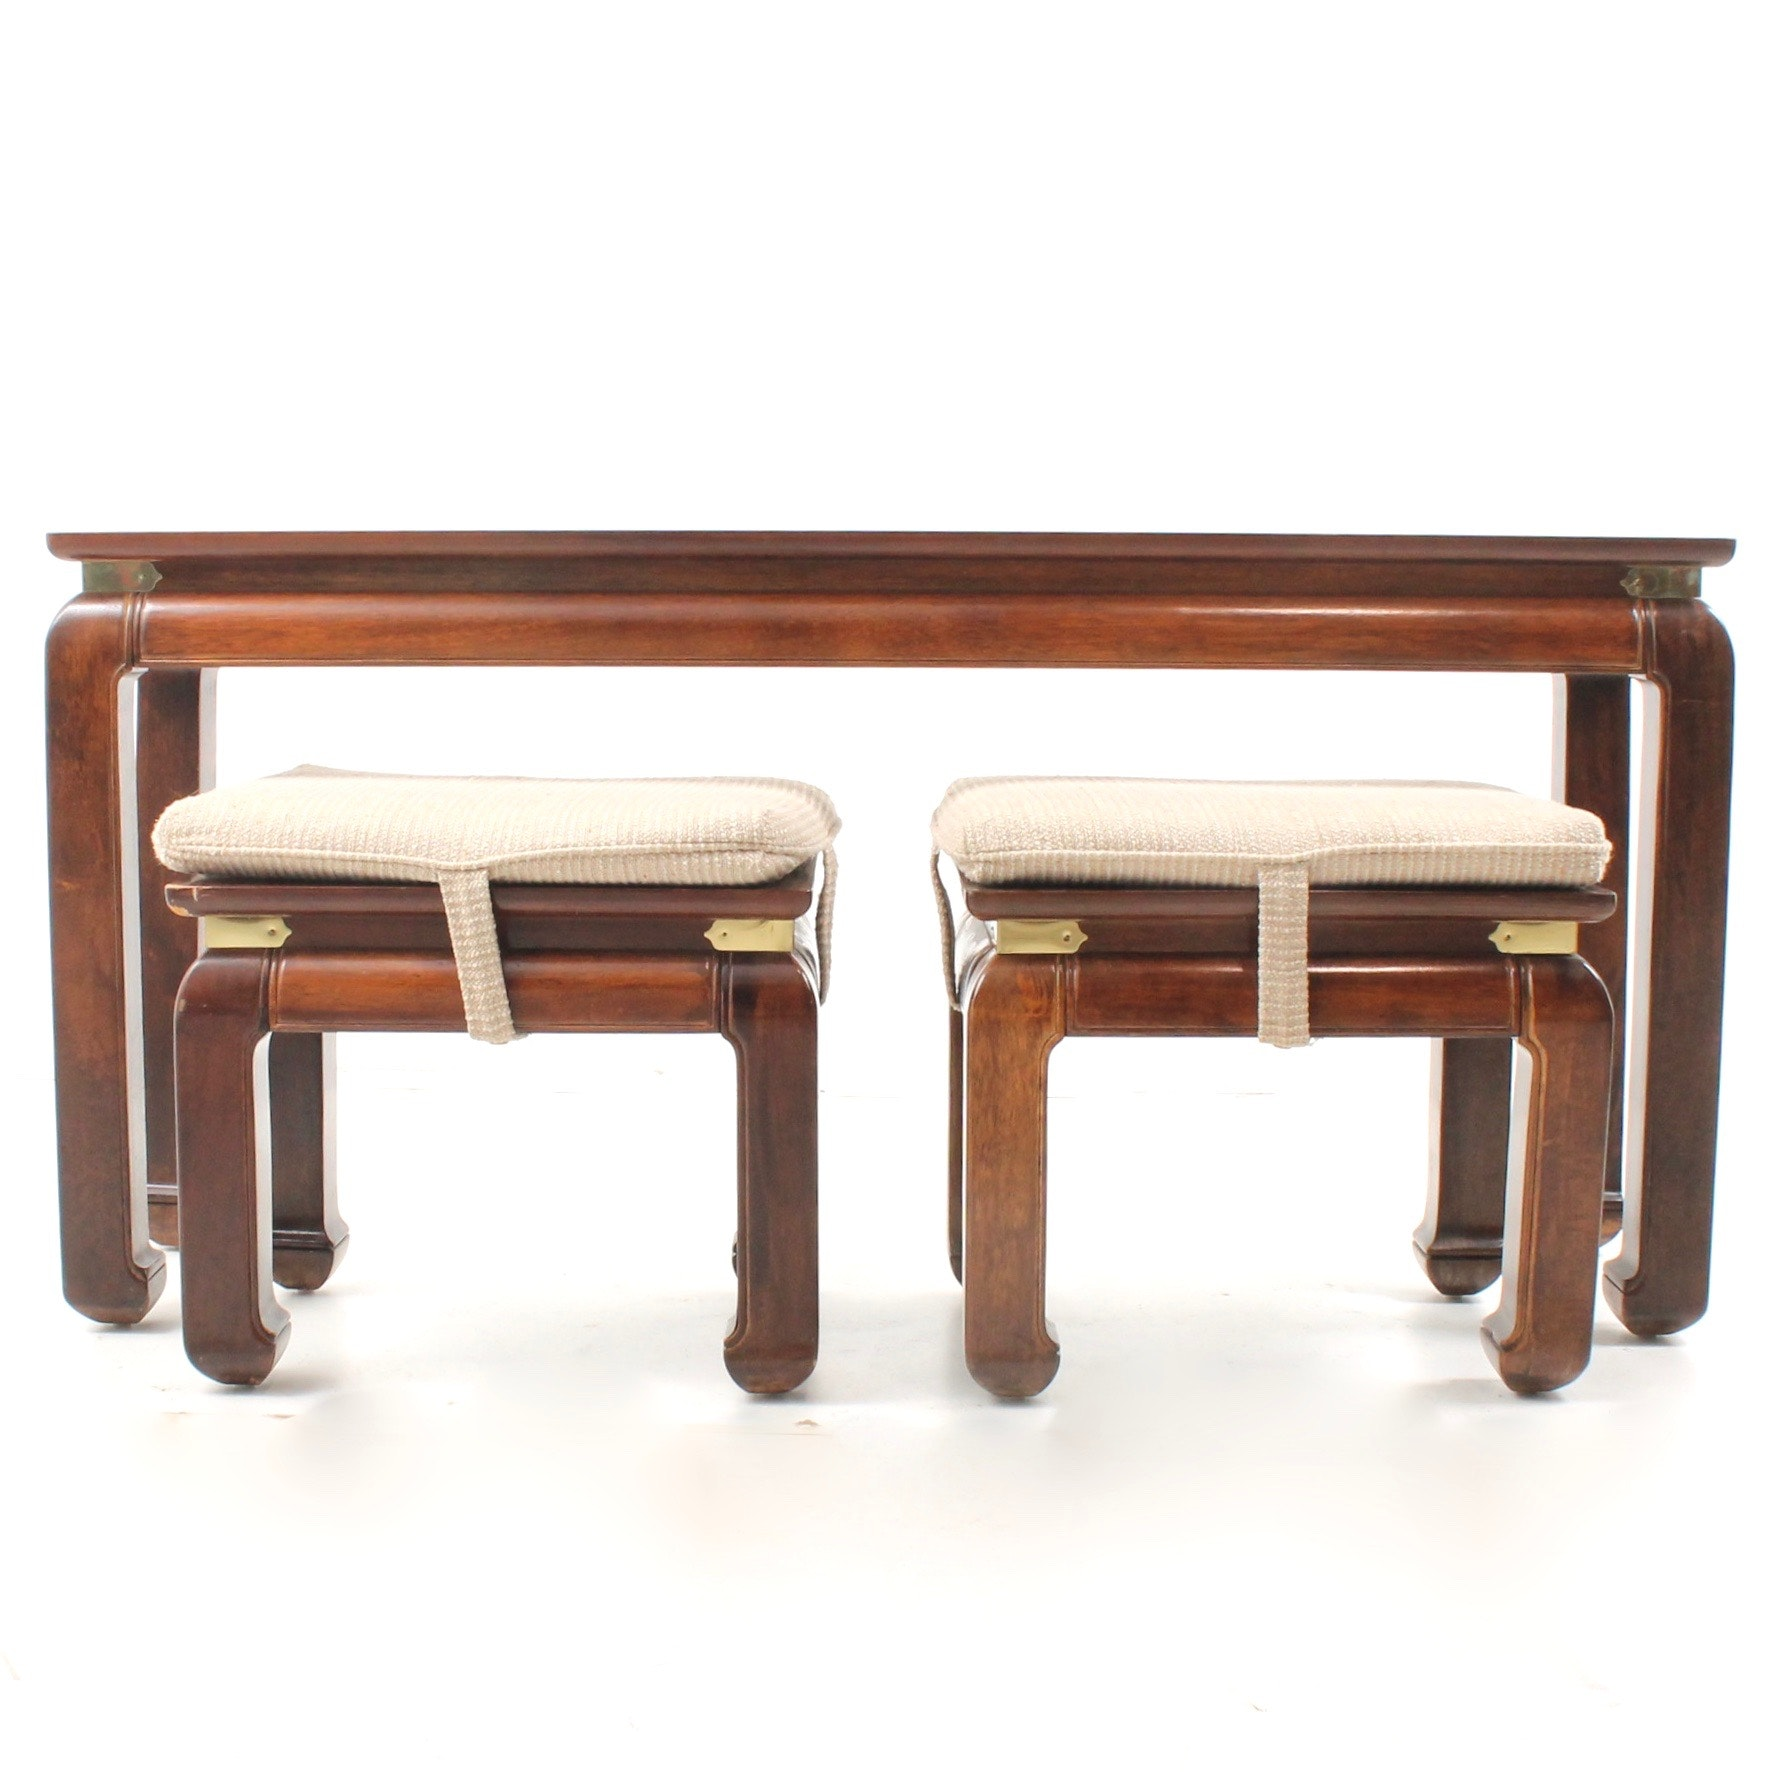 Chinese Inspired Smoked Glass Top Sofa Table and Two Benches